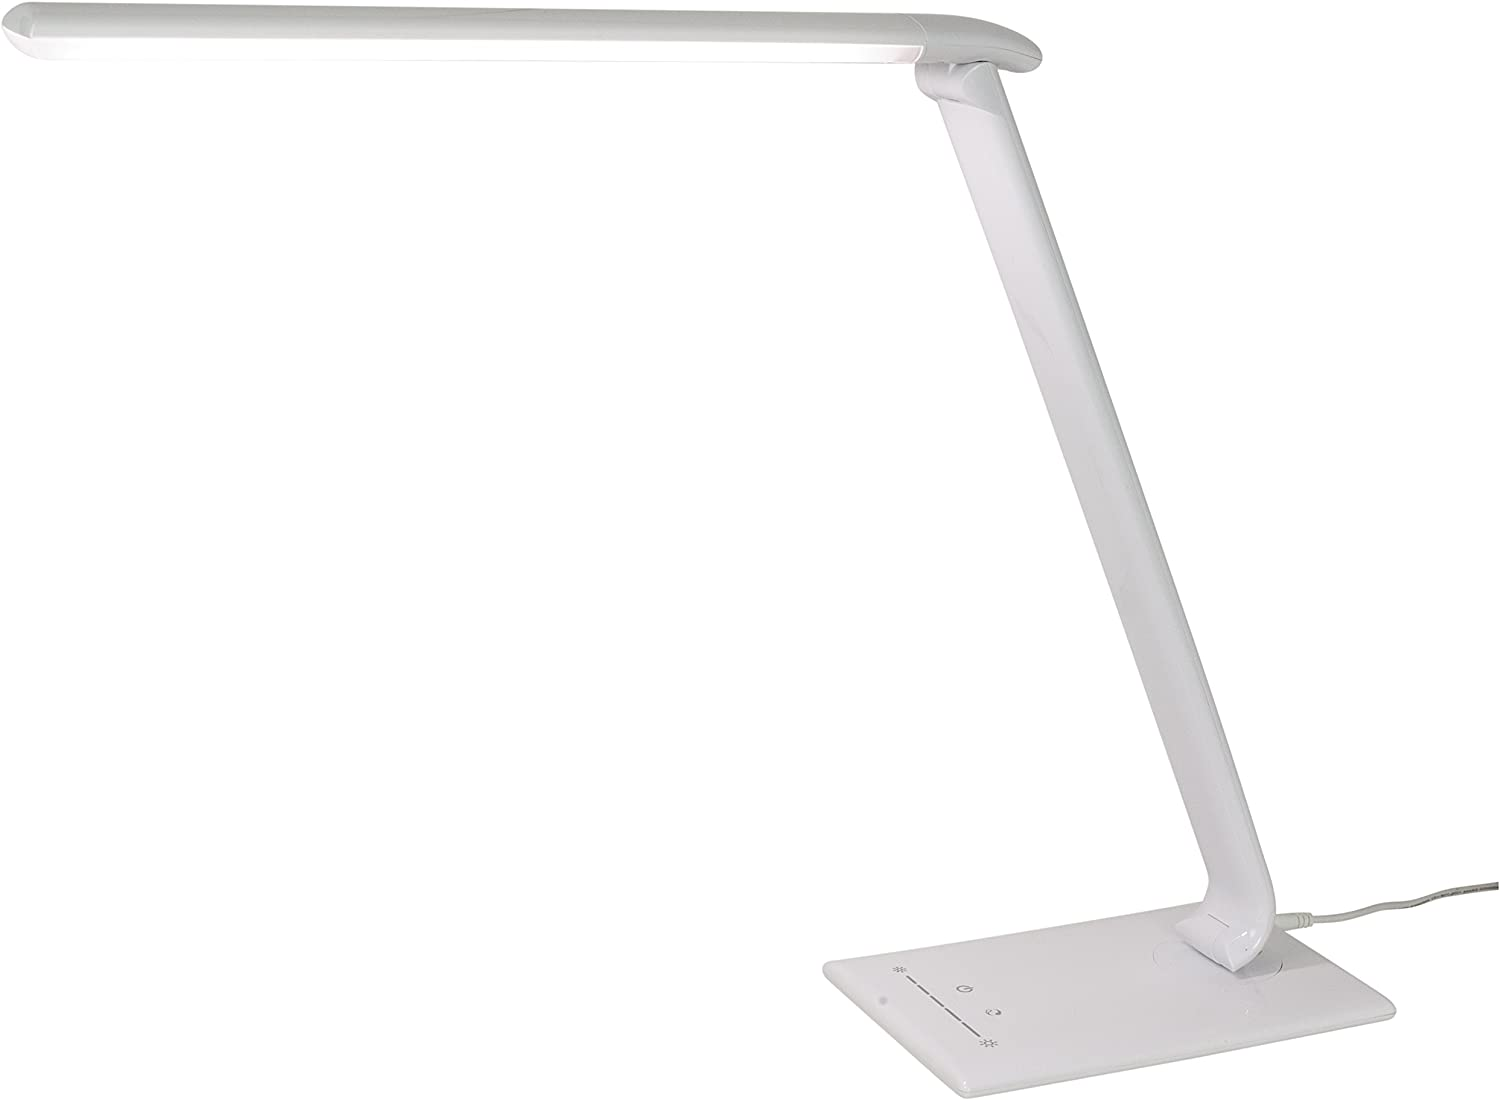 Sunlite 80665 Su Led Desk Lamp 15 Watts 120 Volts Dimmable Touch Panel Controls 4 Color Modes Built In Usb Port White Home Improvement